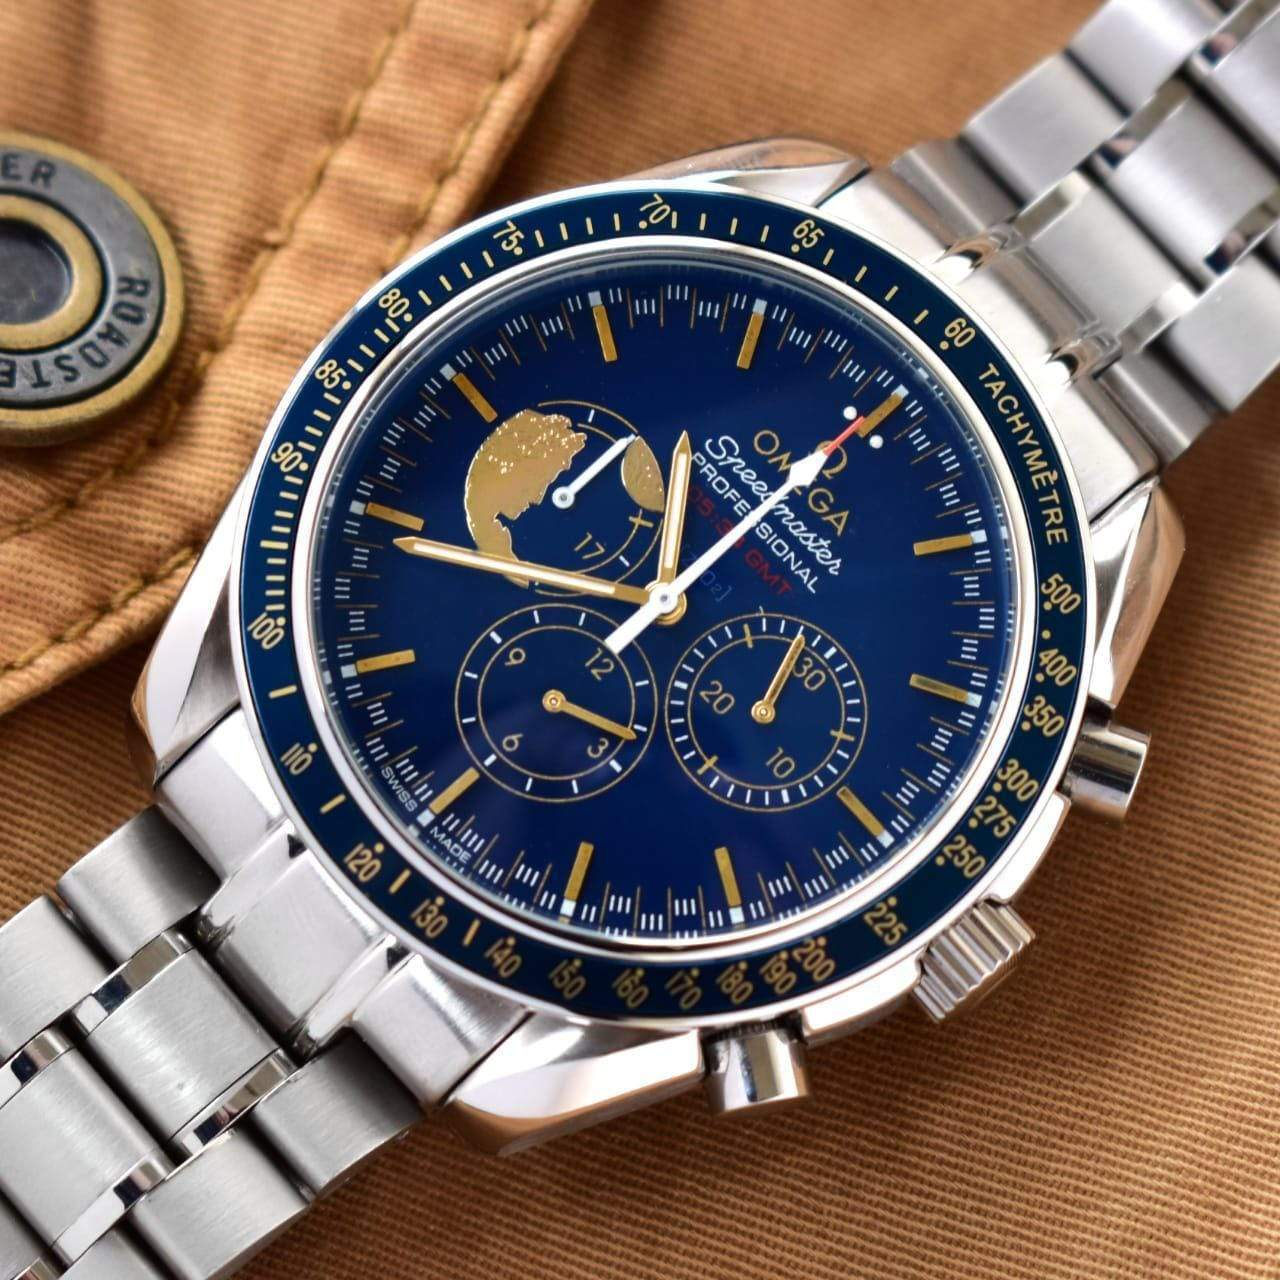 Omega Speedmaster Apollo 17 Edition Bracelet Men's Watch First Copy